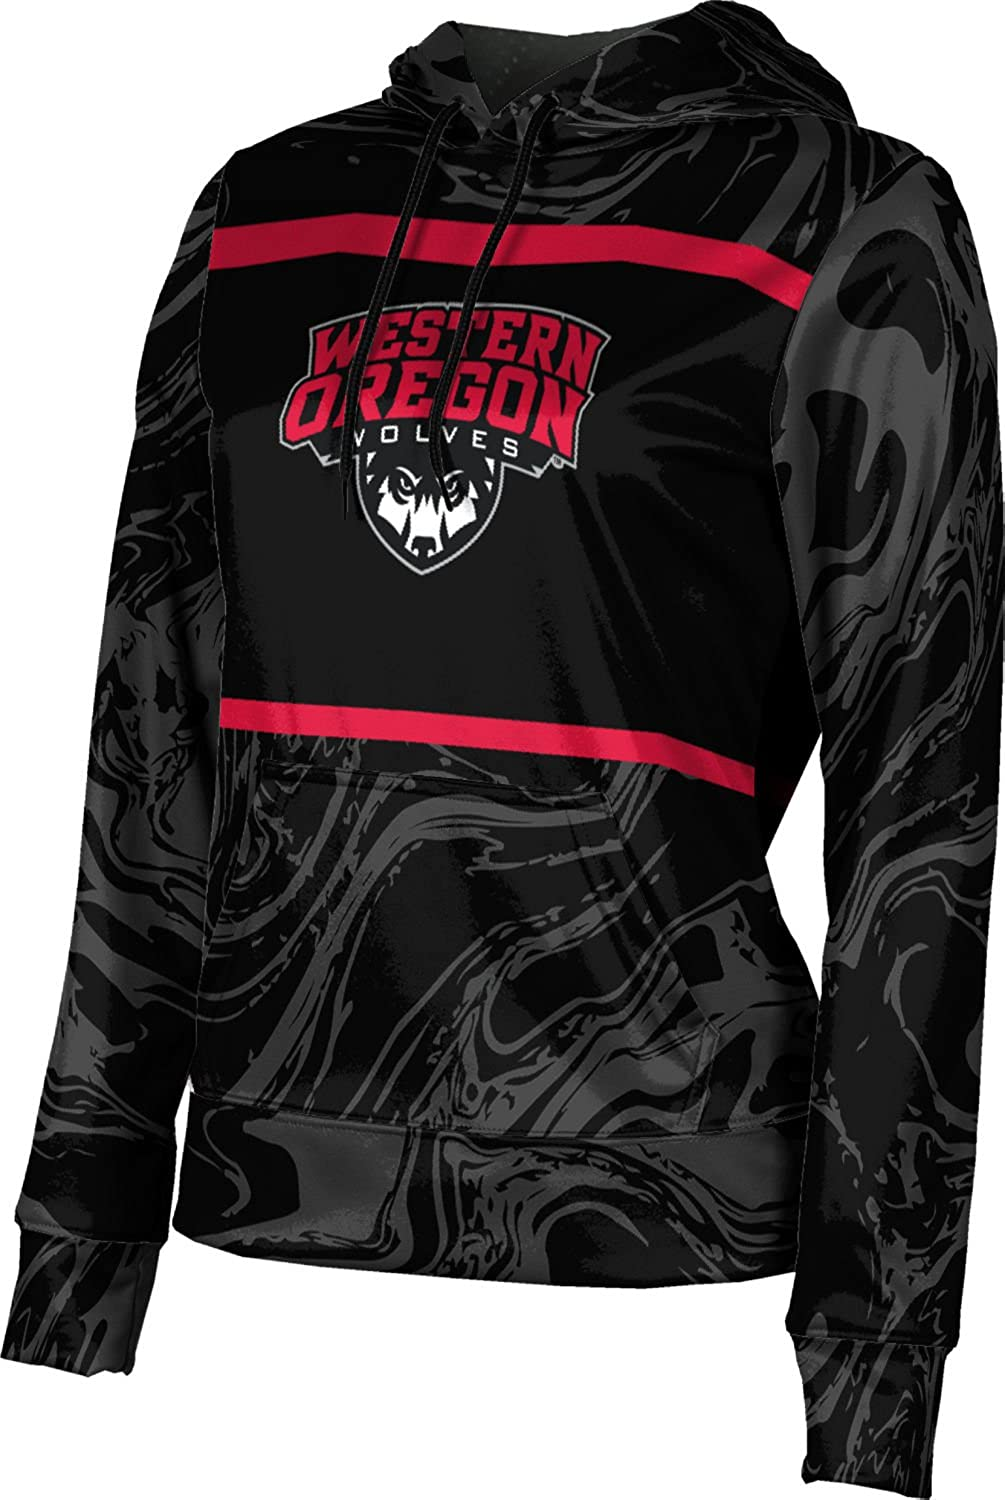 ProSphere Western Oregon University Girls' Pullover Hoodie - Ripple